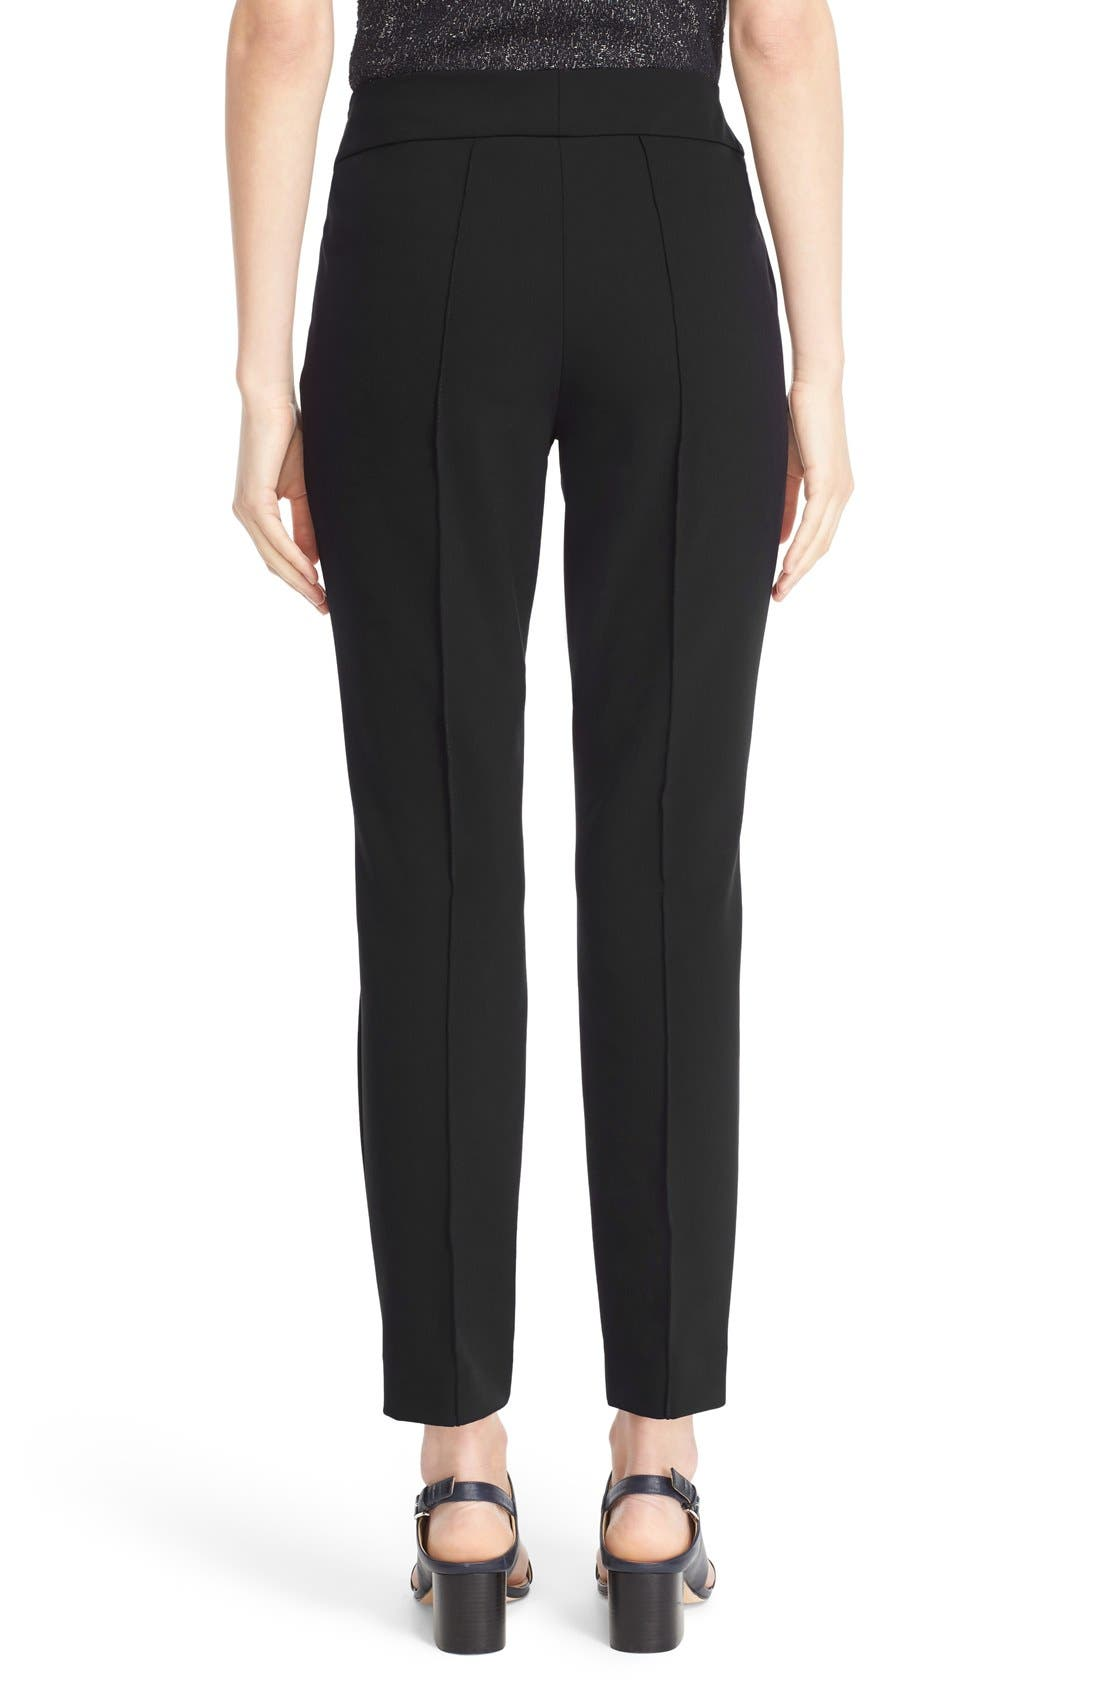 LAFAYETTE 148 NEW YORK, 'Gramercy' Acclaimed Stretch Pants, Alternate thumbnail 6, color, BLACK